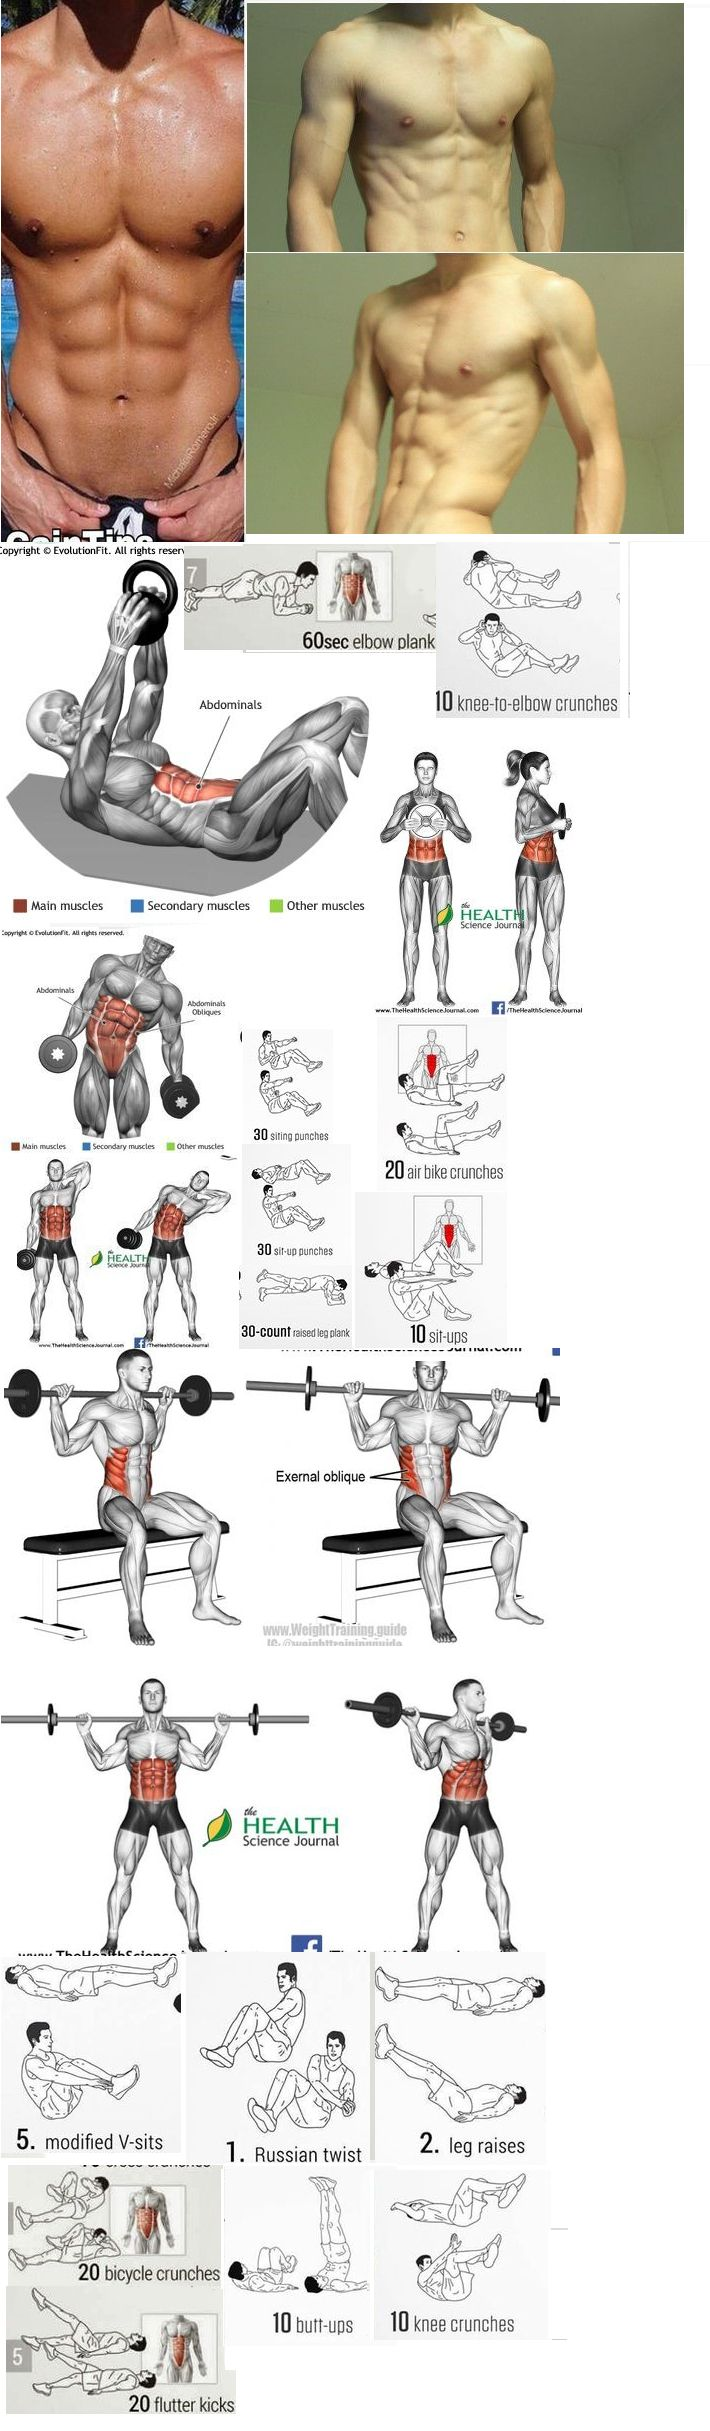 Pin by Alex Muscan on anatomy | Pinterest | Workout, Exercises and Gym